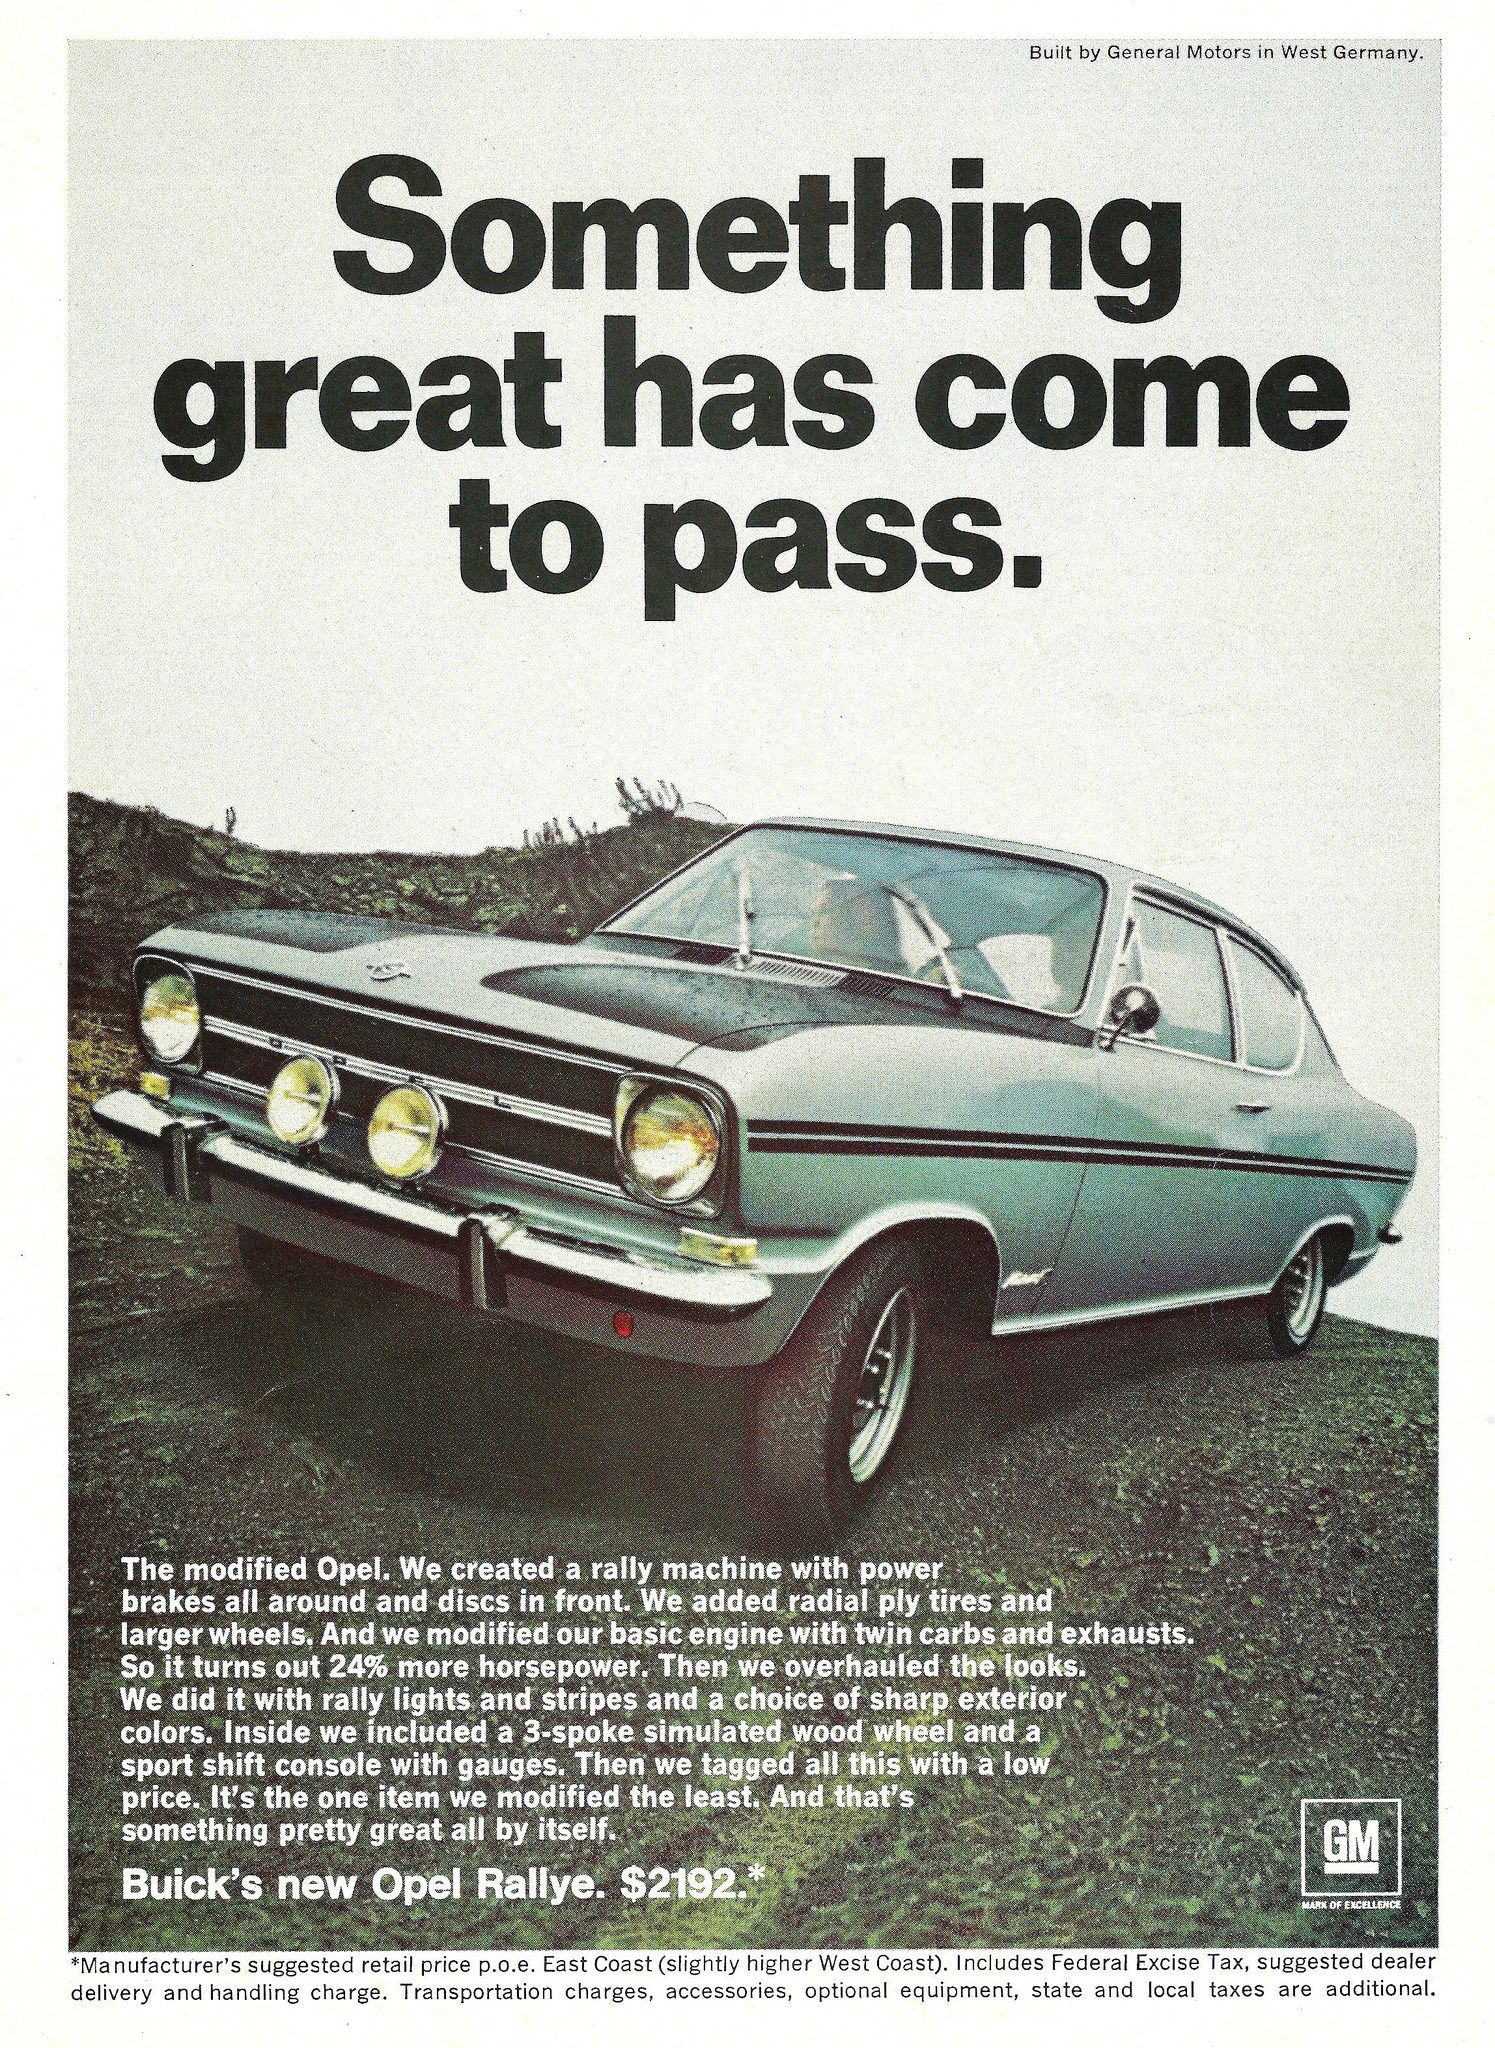 Advertising For The 1967 Opel Rallye Automobile Imported By Buick ...